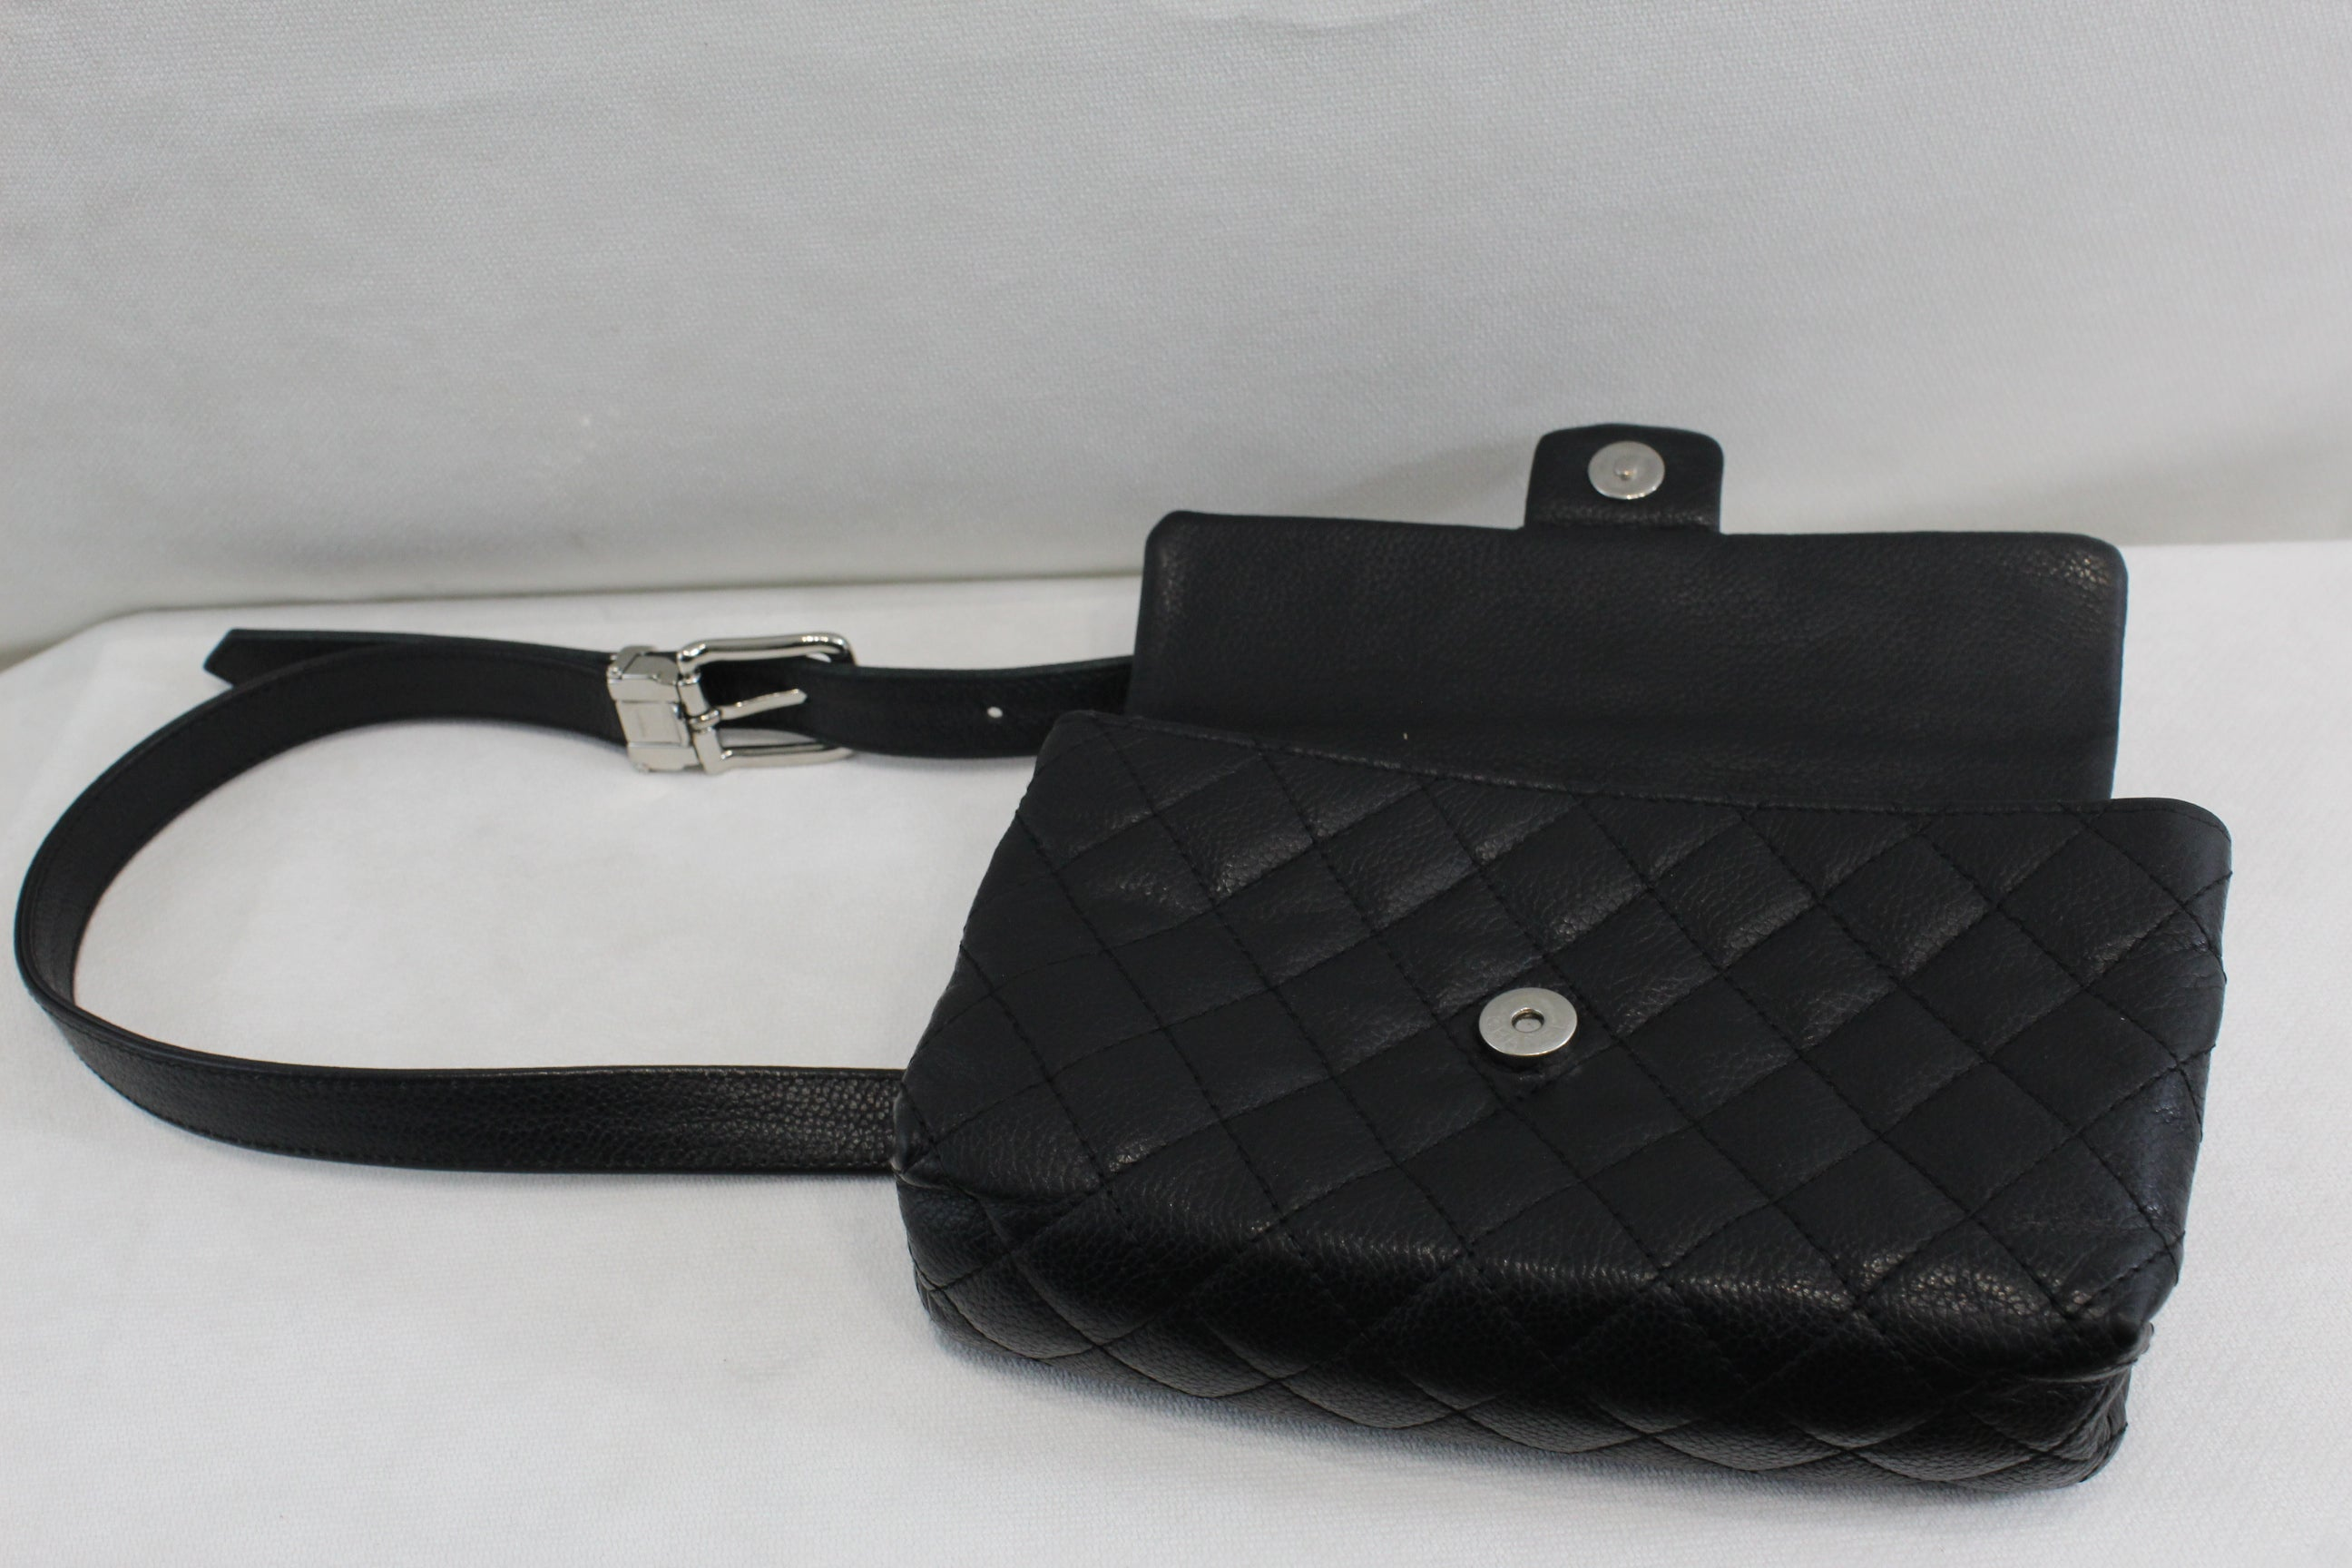 d07e22fd9109 Chanel Uniform Belt Bag in Black Caviar Leather at 1stdibs